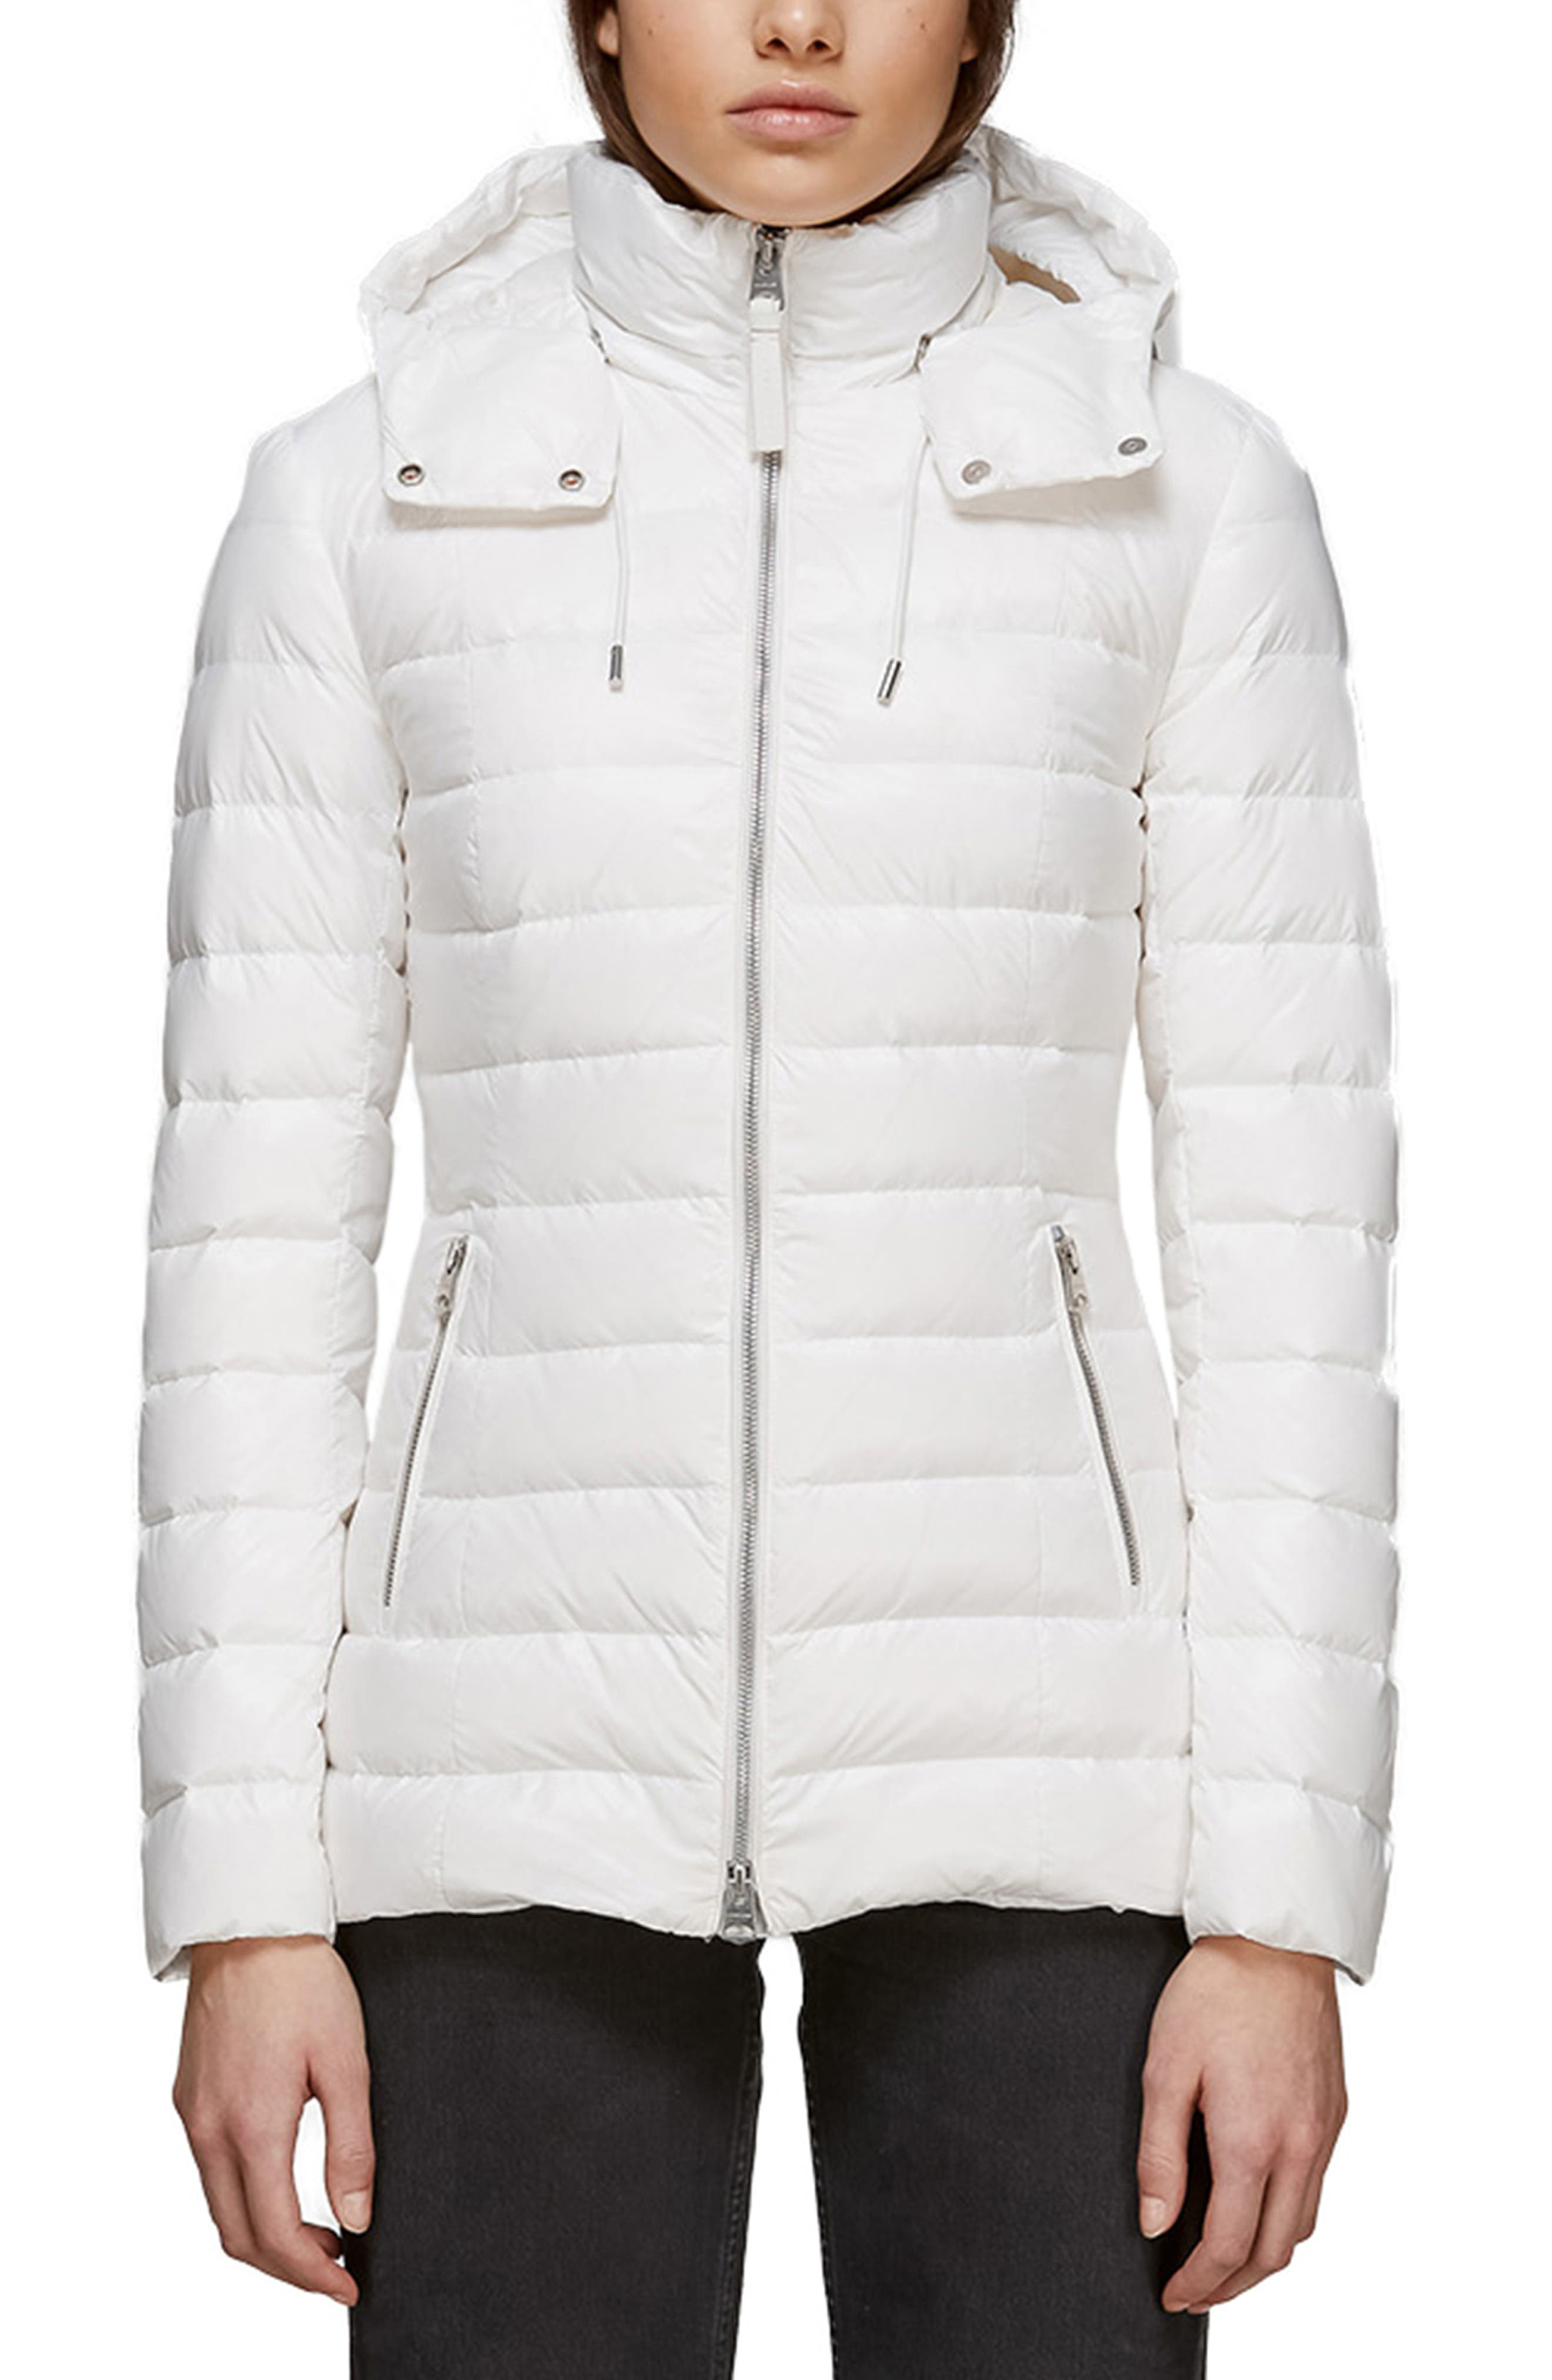 Mackage Lightweight Hooded Water Repellent 800 Plus Fill Power Down Jacket, White